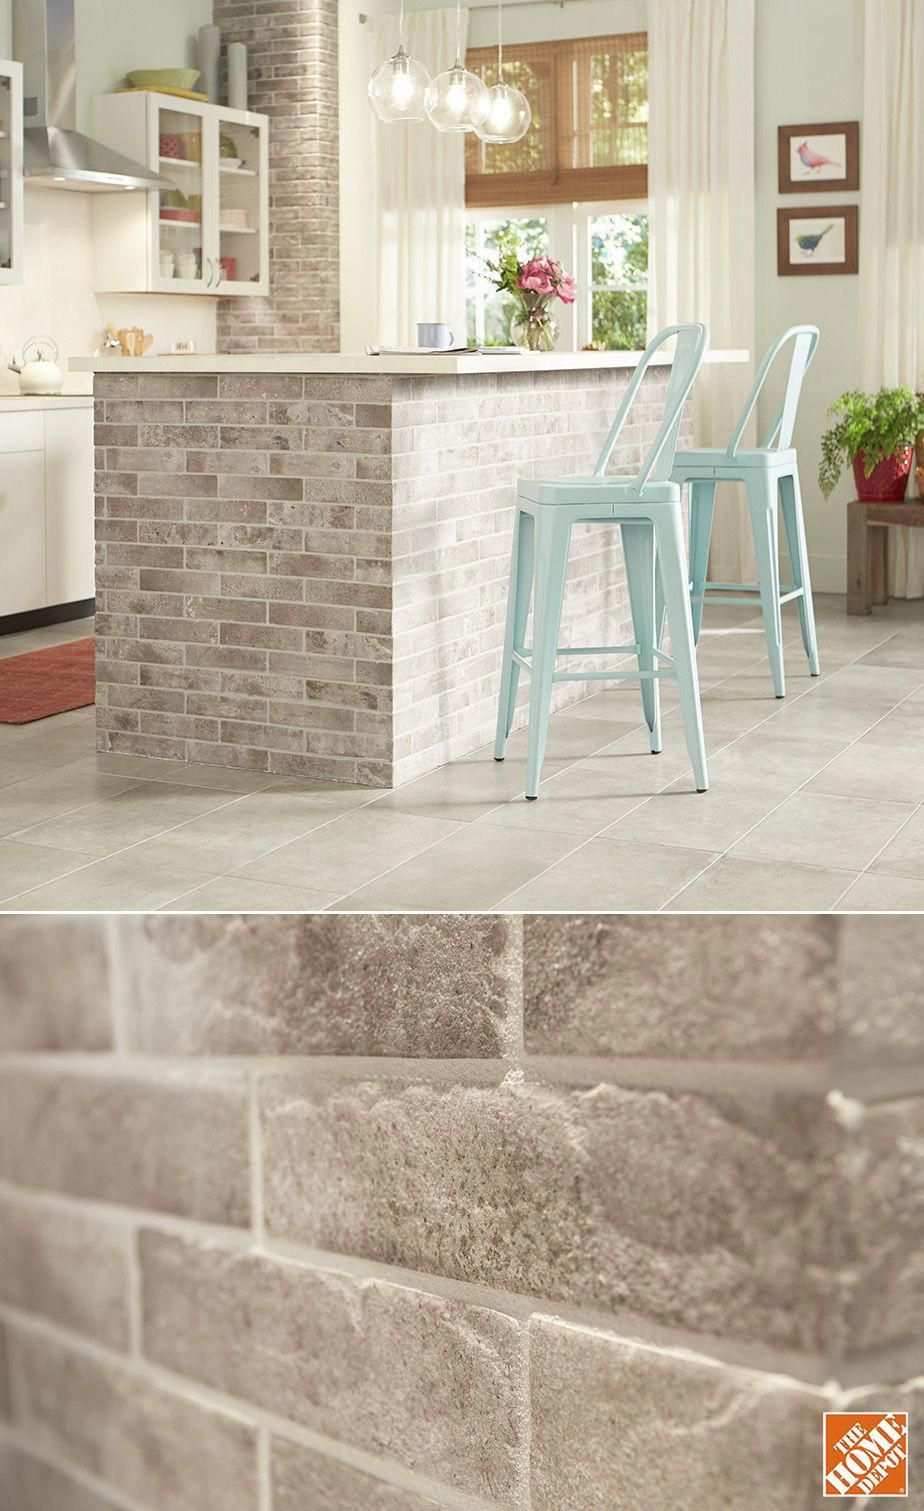 - MSI Abbey Brick 2-1 / 3 In. X 10 In. Glazed Porcelain Floor And